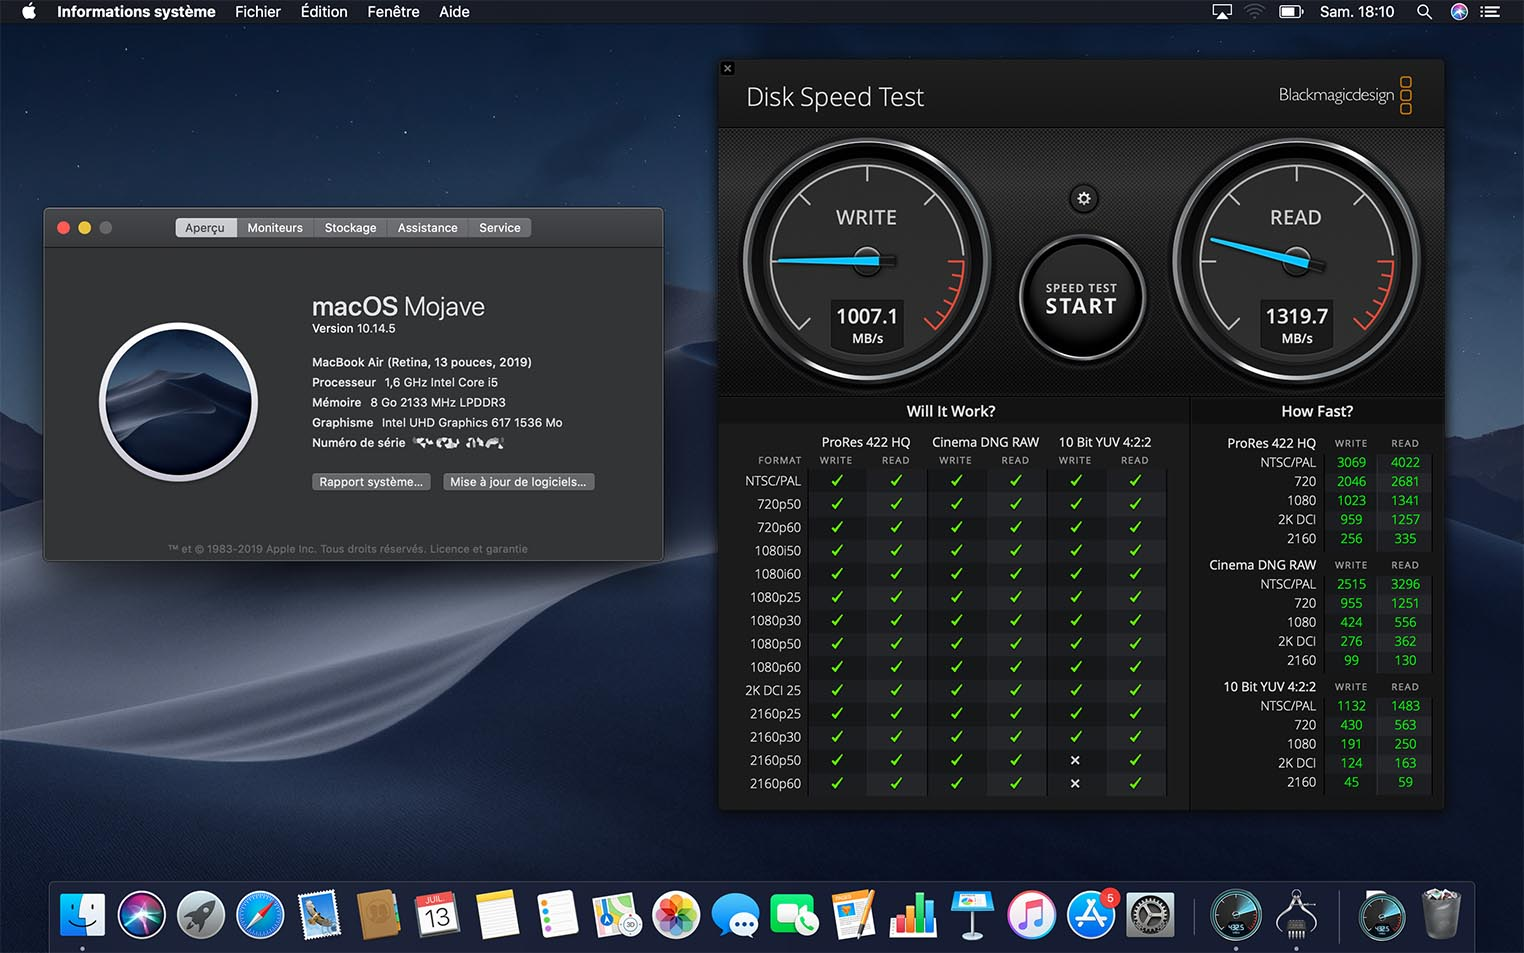 Loading ssd-mba-2019-speed-test-256.jpg ...